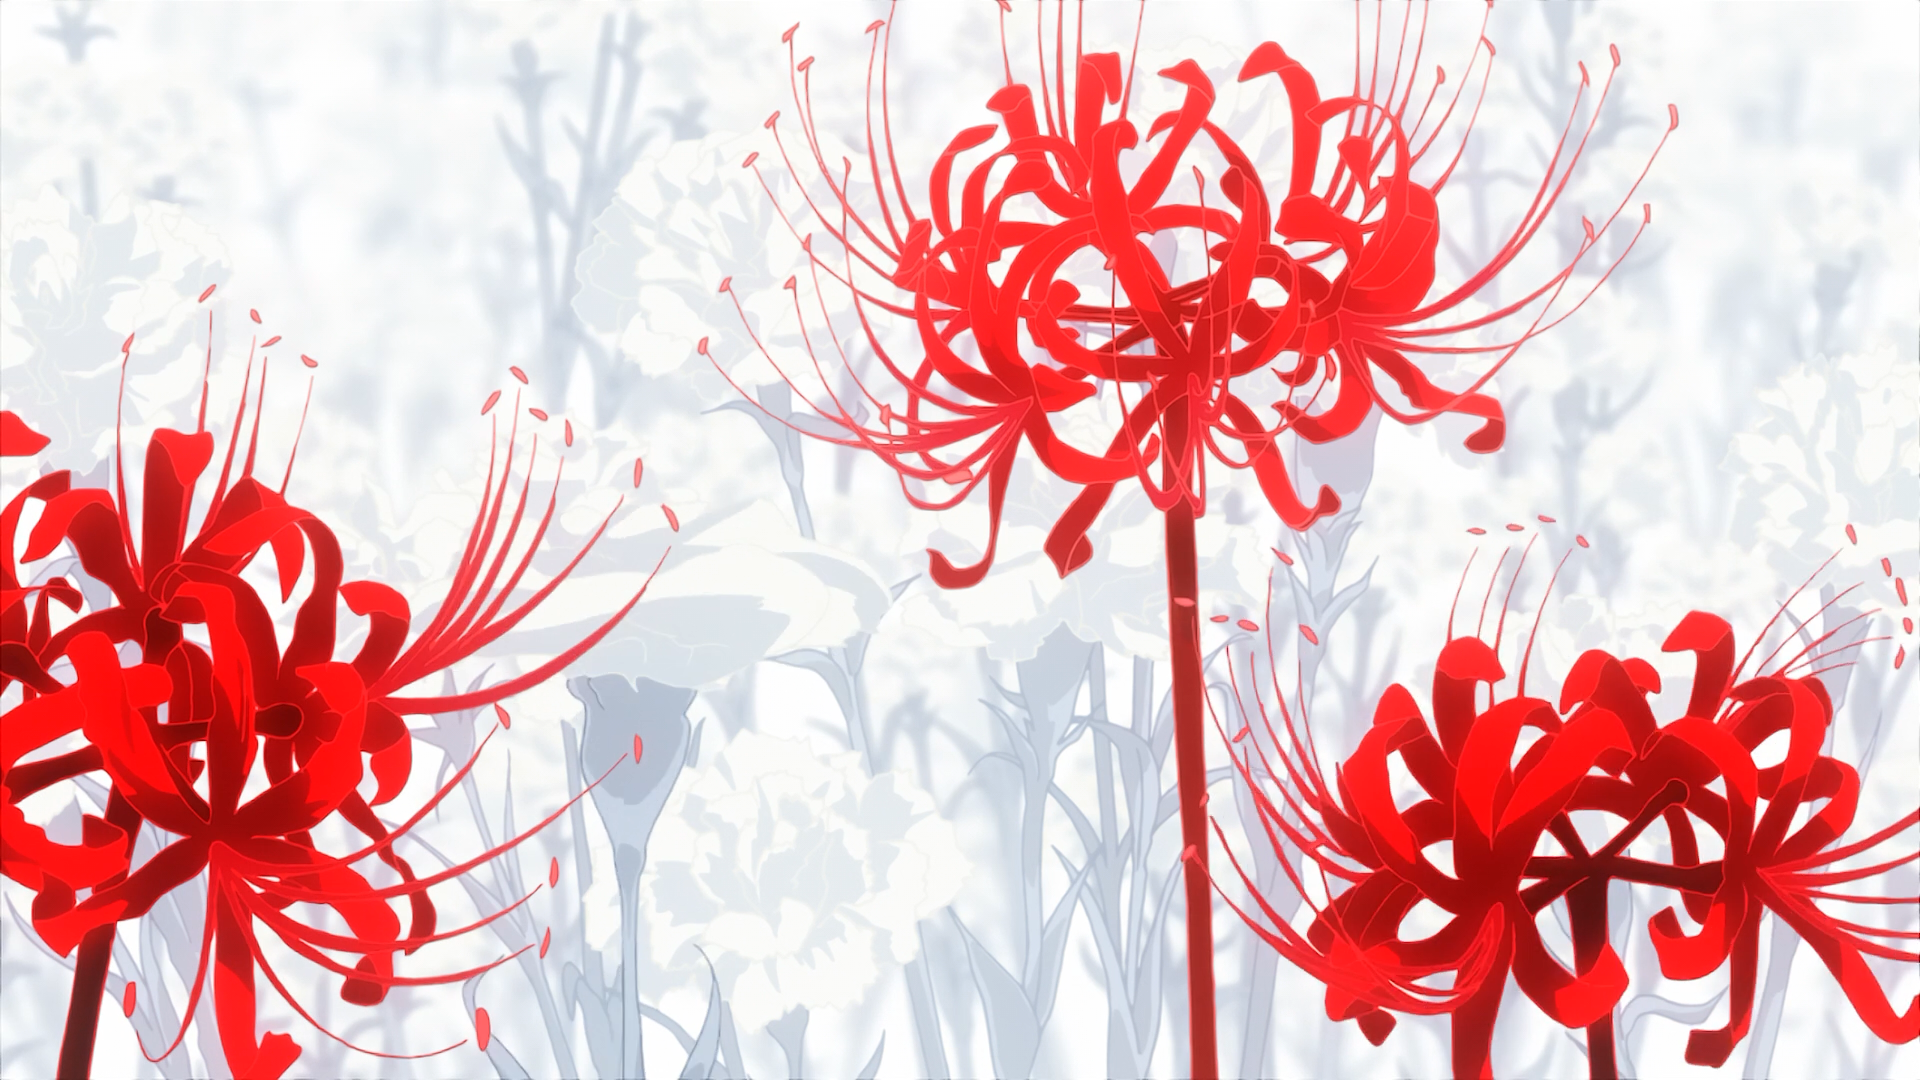 Red Spider Lily Tokyo Ghoul Tokyo Ghoul Flower Tokyo Ghoul Wallpapers Lilies Drawing